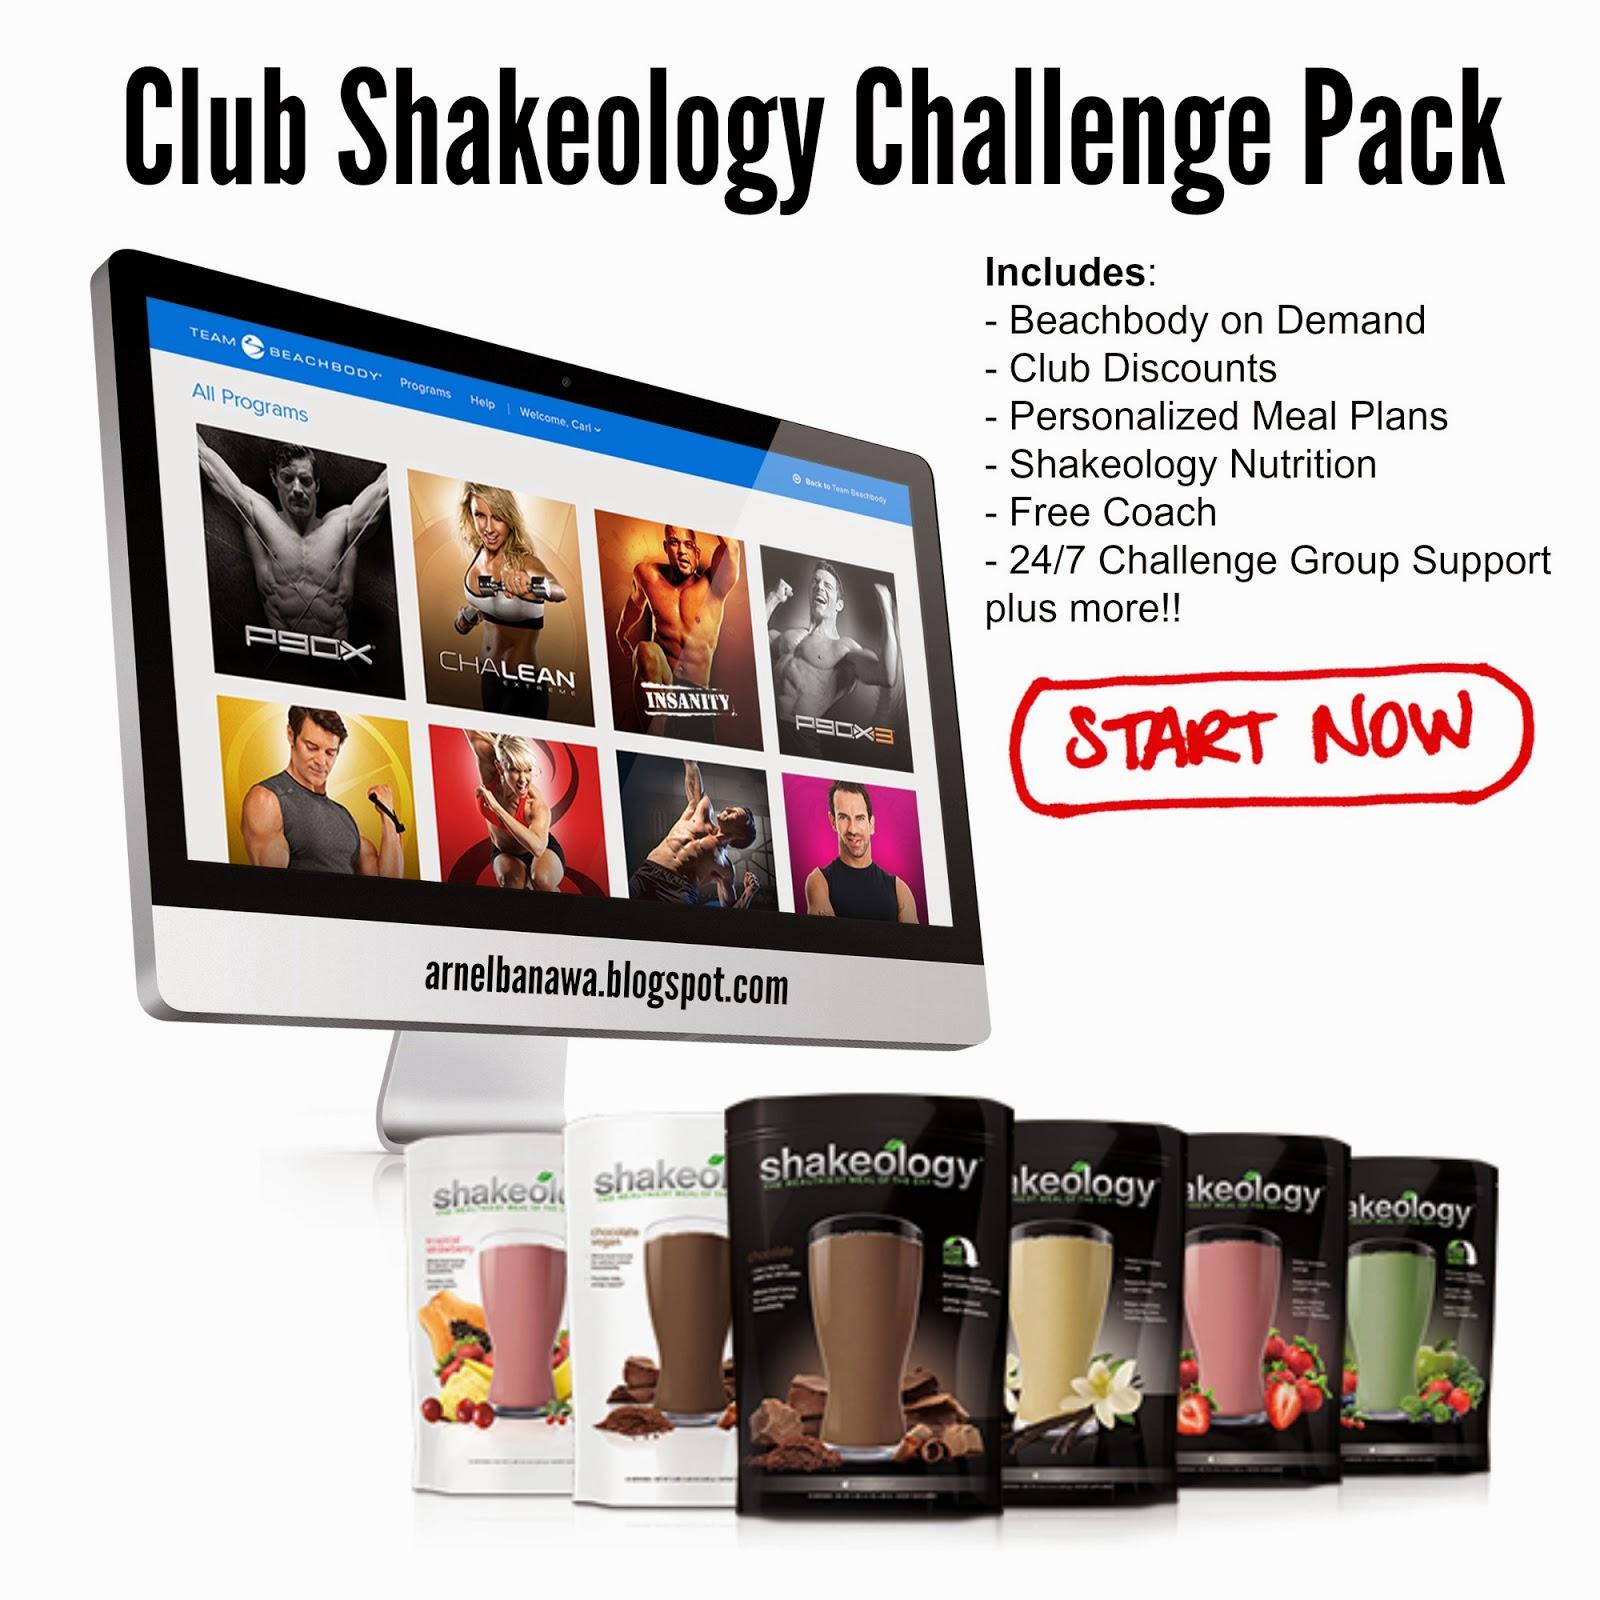 Team Beachbody Club Shakeology Challenge Pack - Beachbody on Demand Challenge Pack